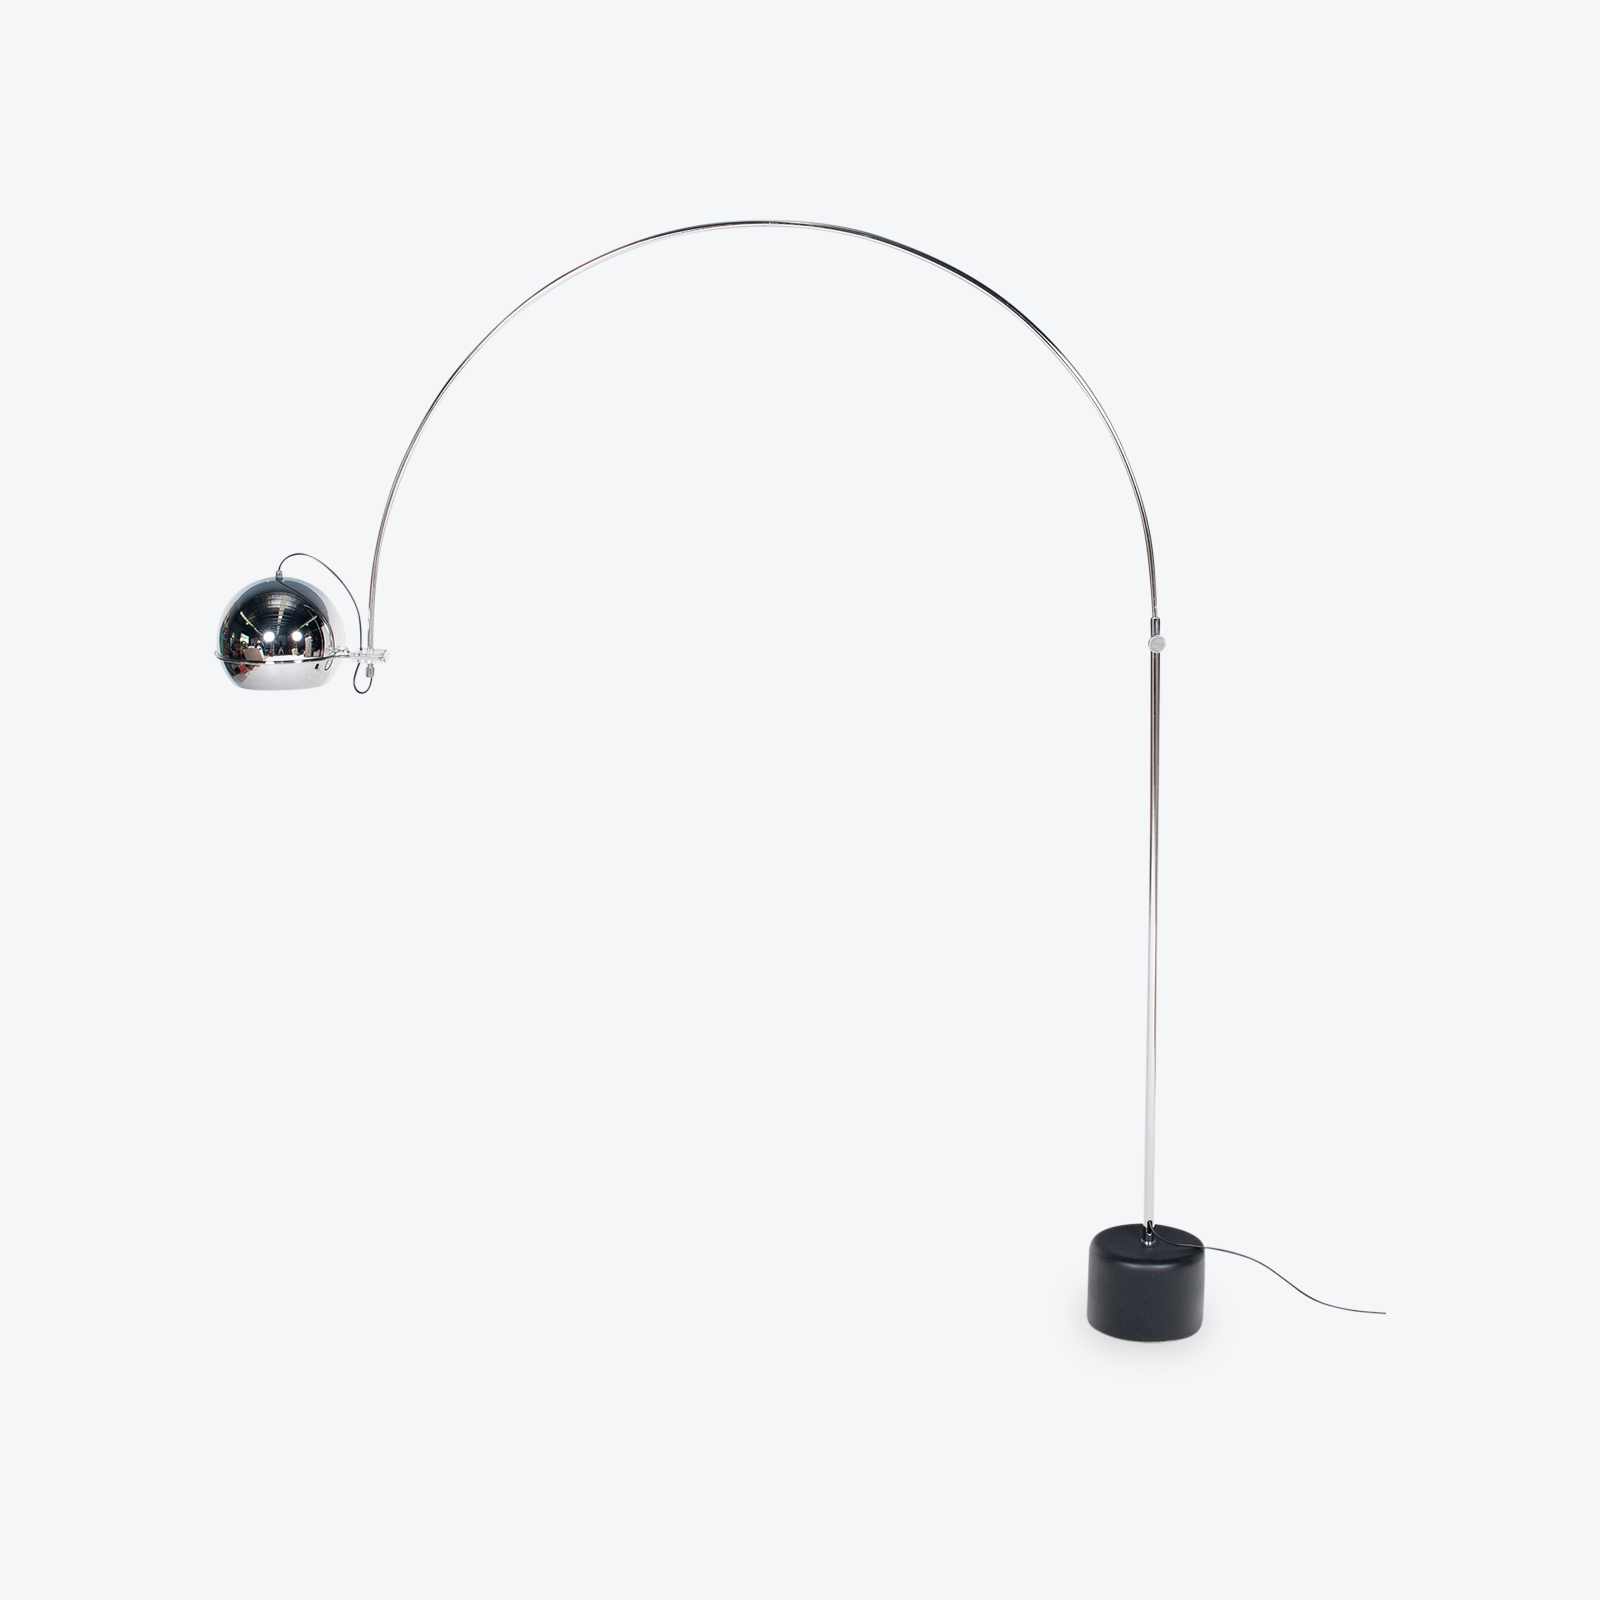 Arc Lamp By Gepo With Painted Black Base, 1950s, The Netherlands Hero